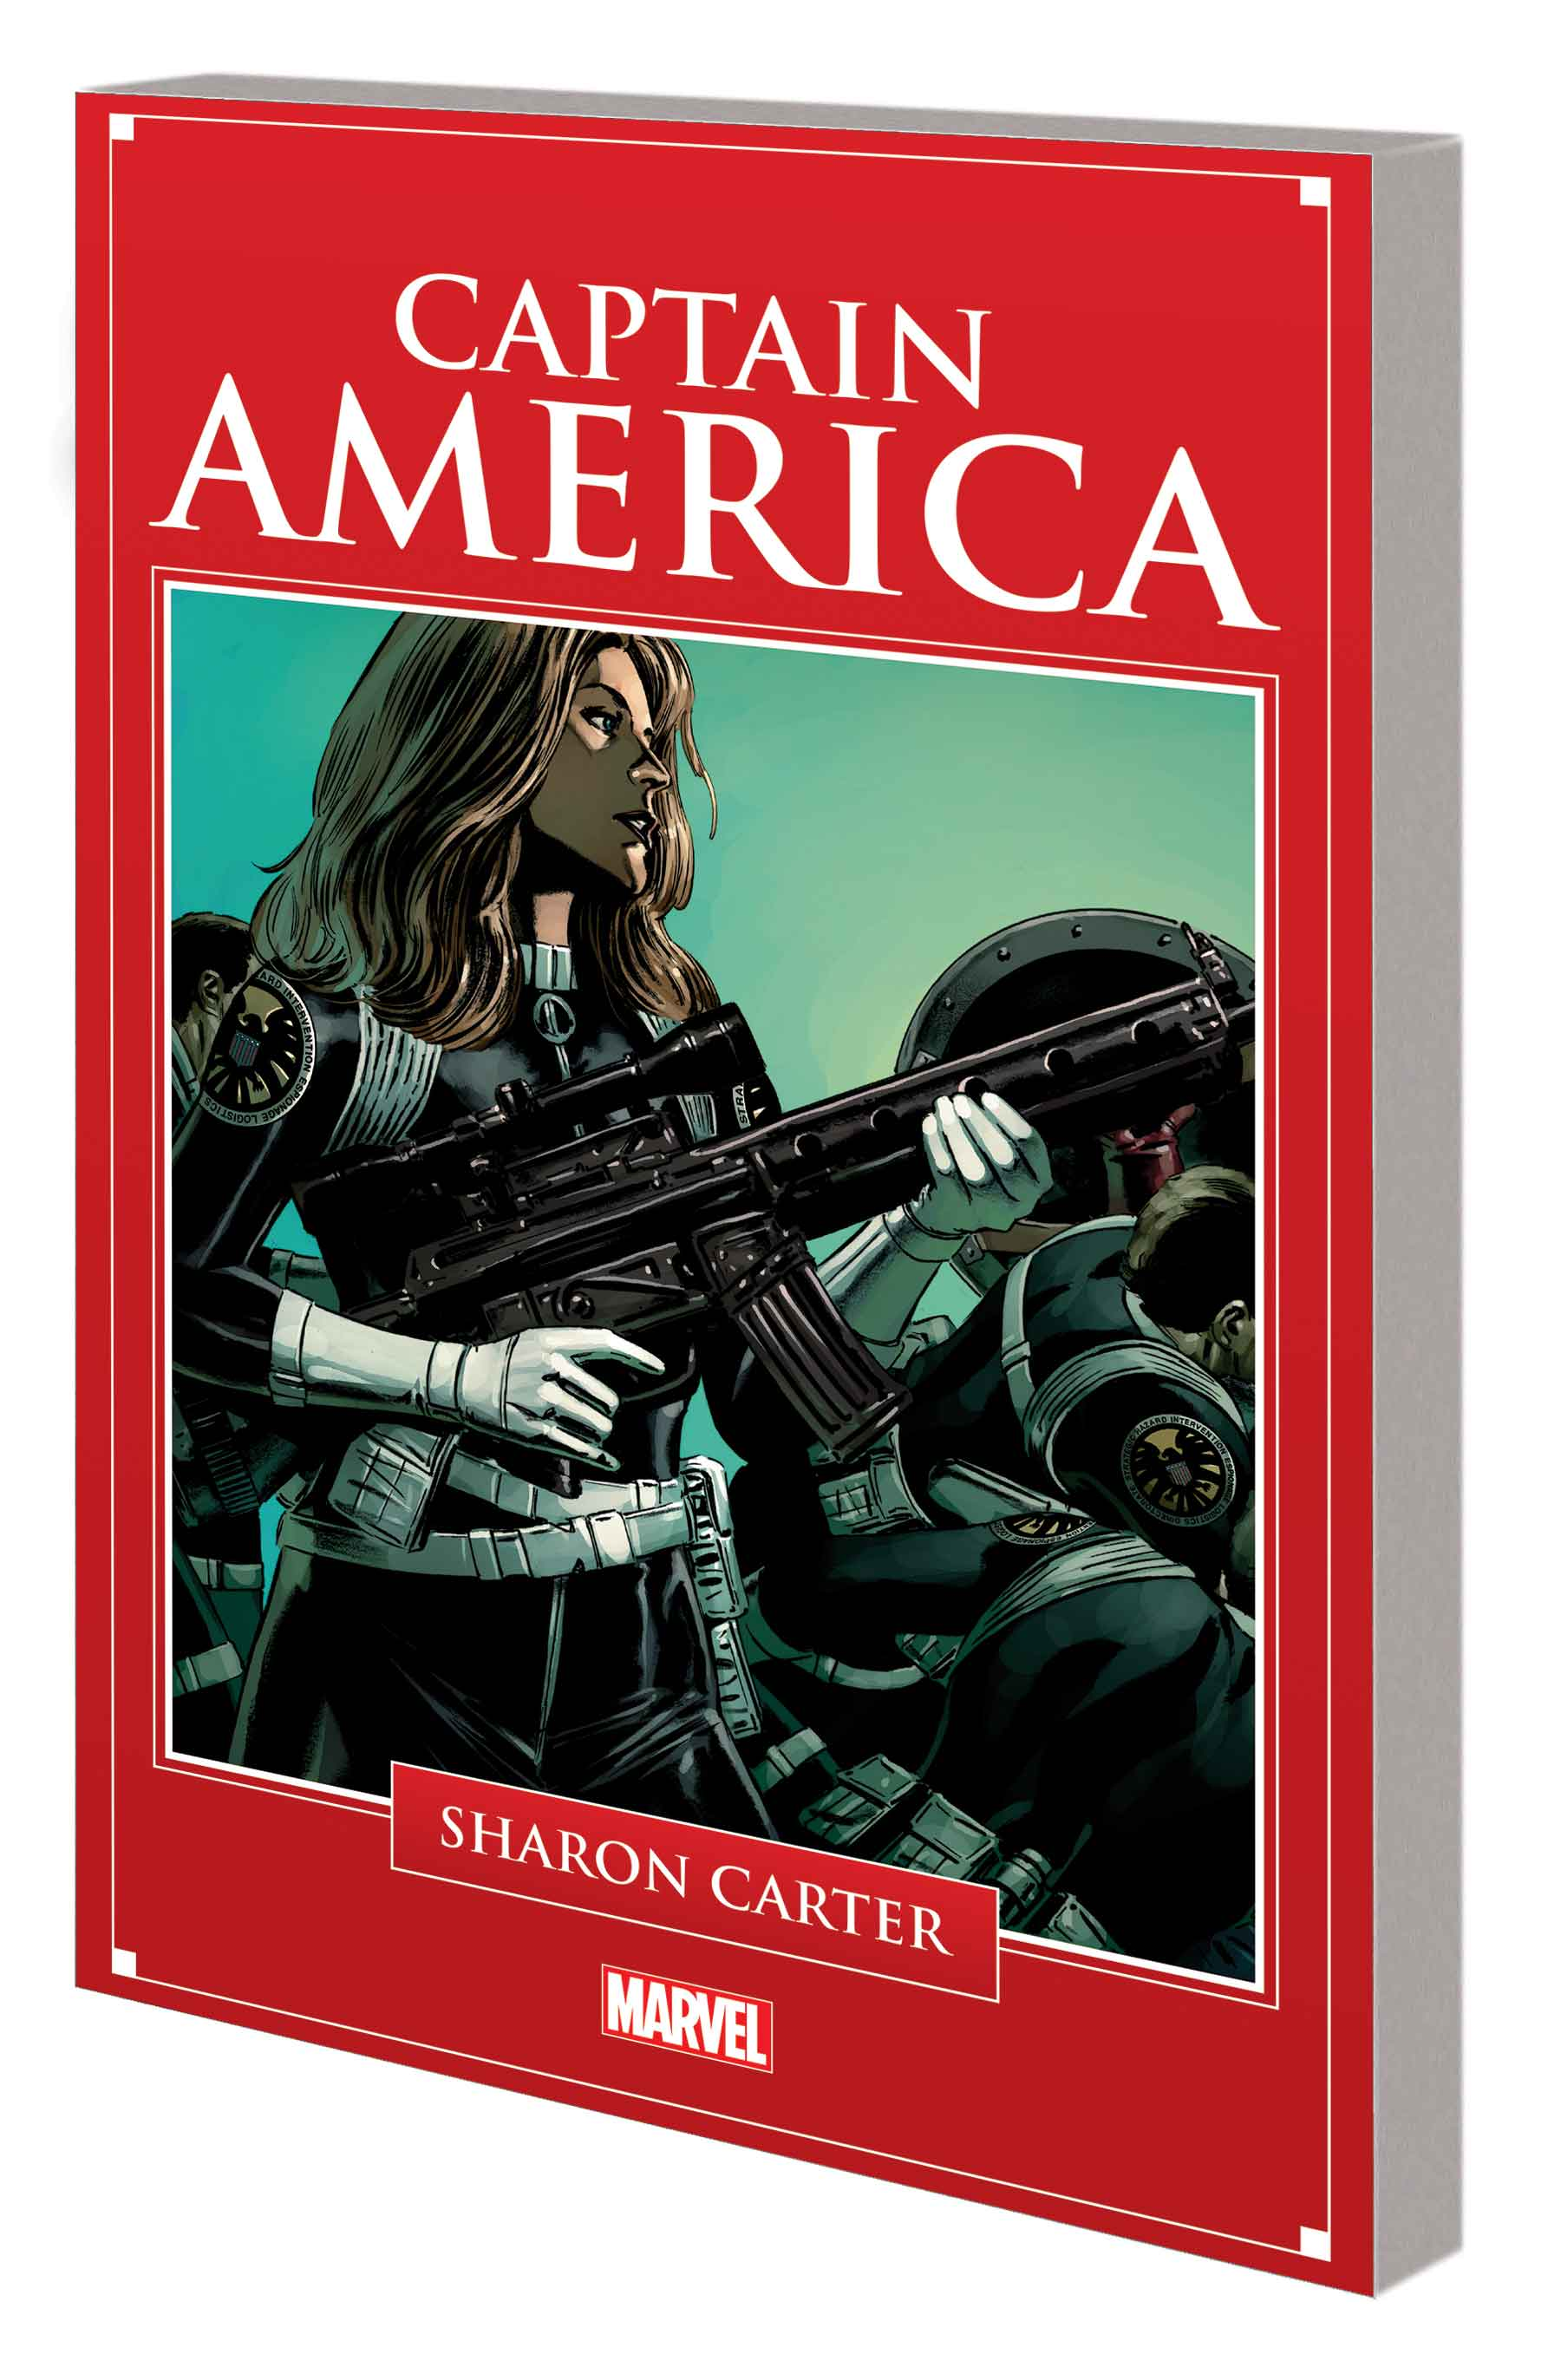 CAPTAIN AMERICA: SHARON CARTER TPB (Trade Paperback)